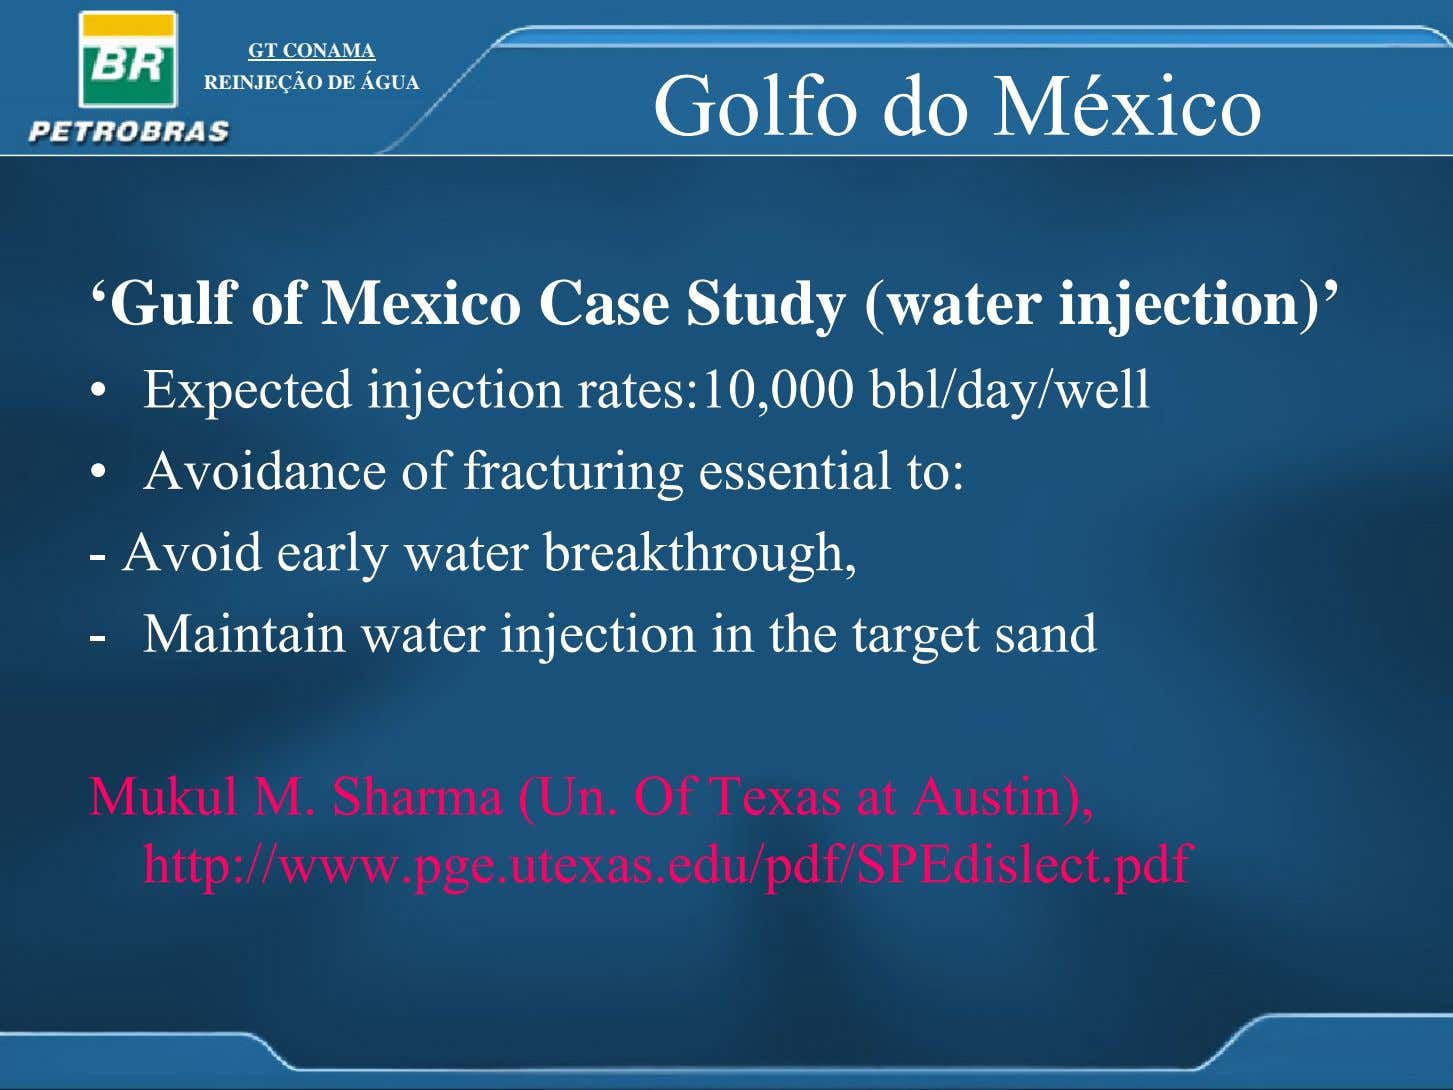 GT CONAMA REINJEÇÃO DE ÁGUA Golfo do México 'Gulf of Mexico Case Study (water injection)'